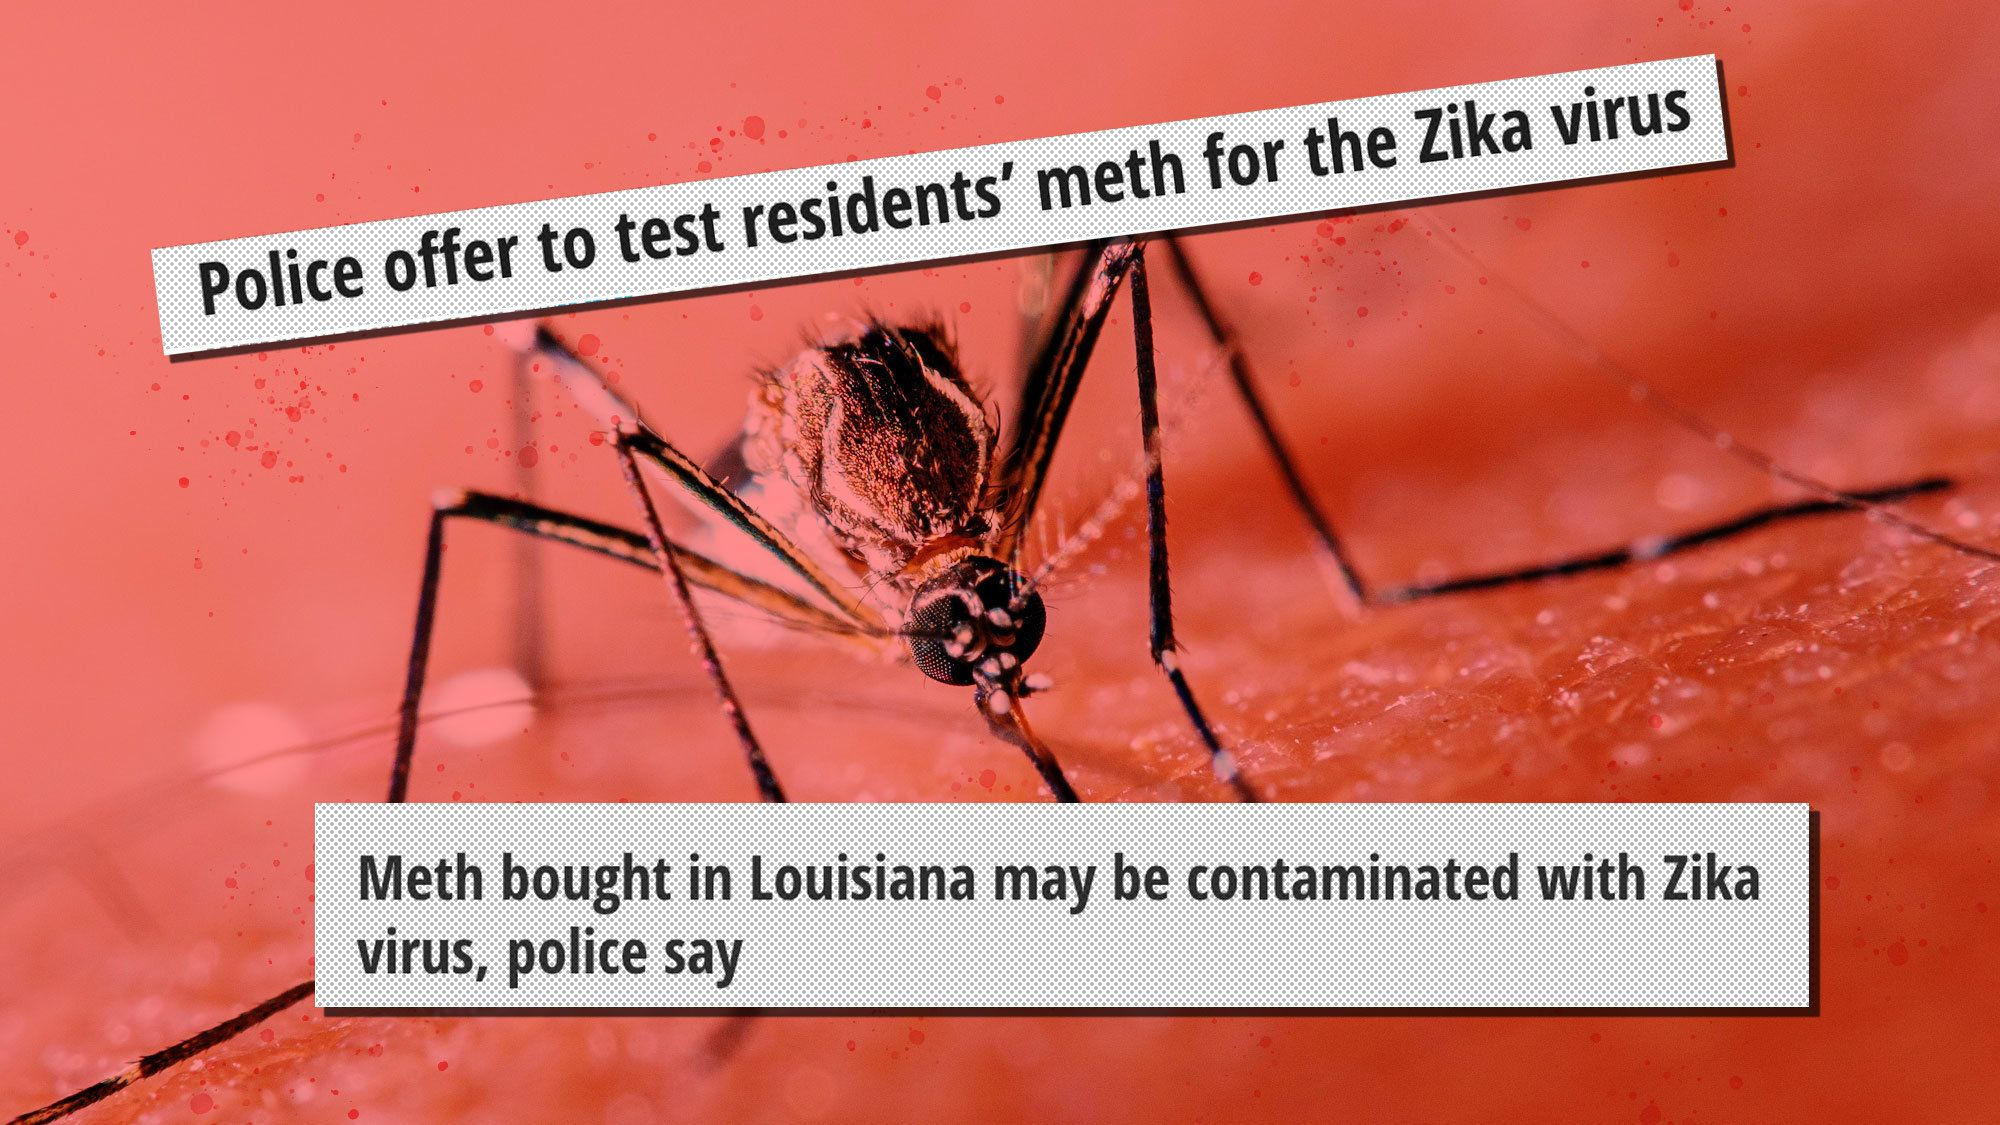 Louisiana police department offering free service to test meth for Zika Virus